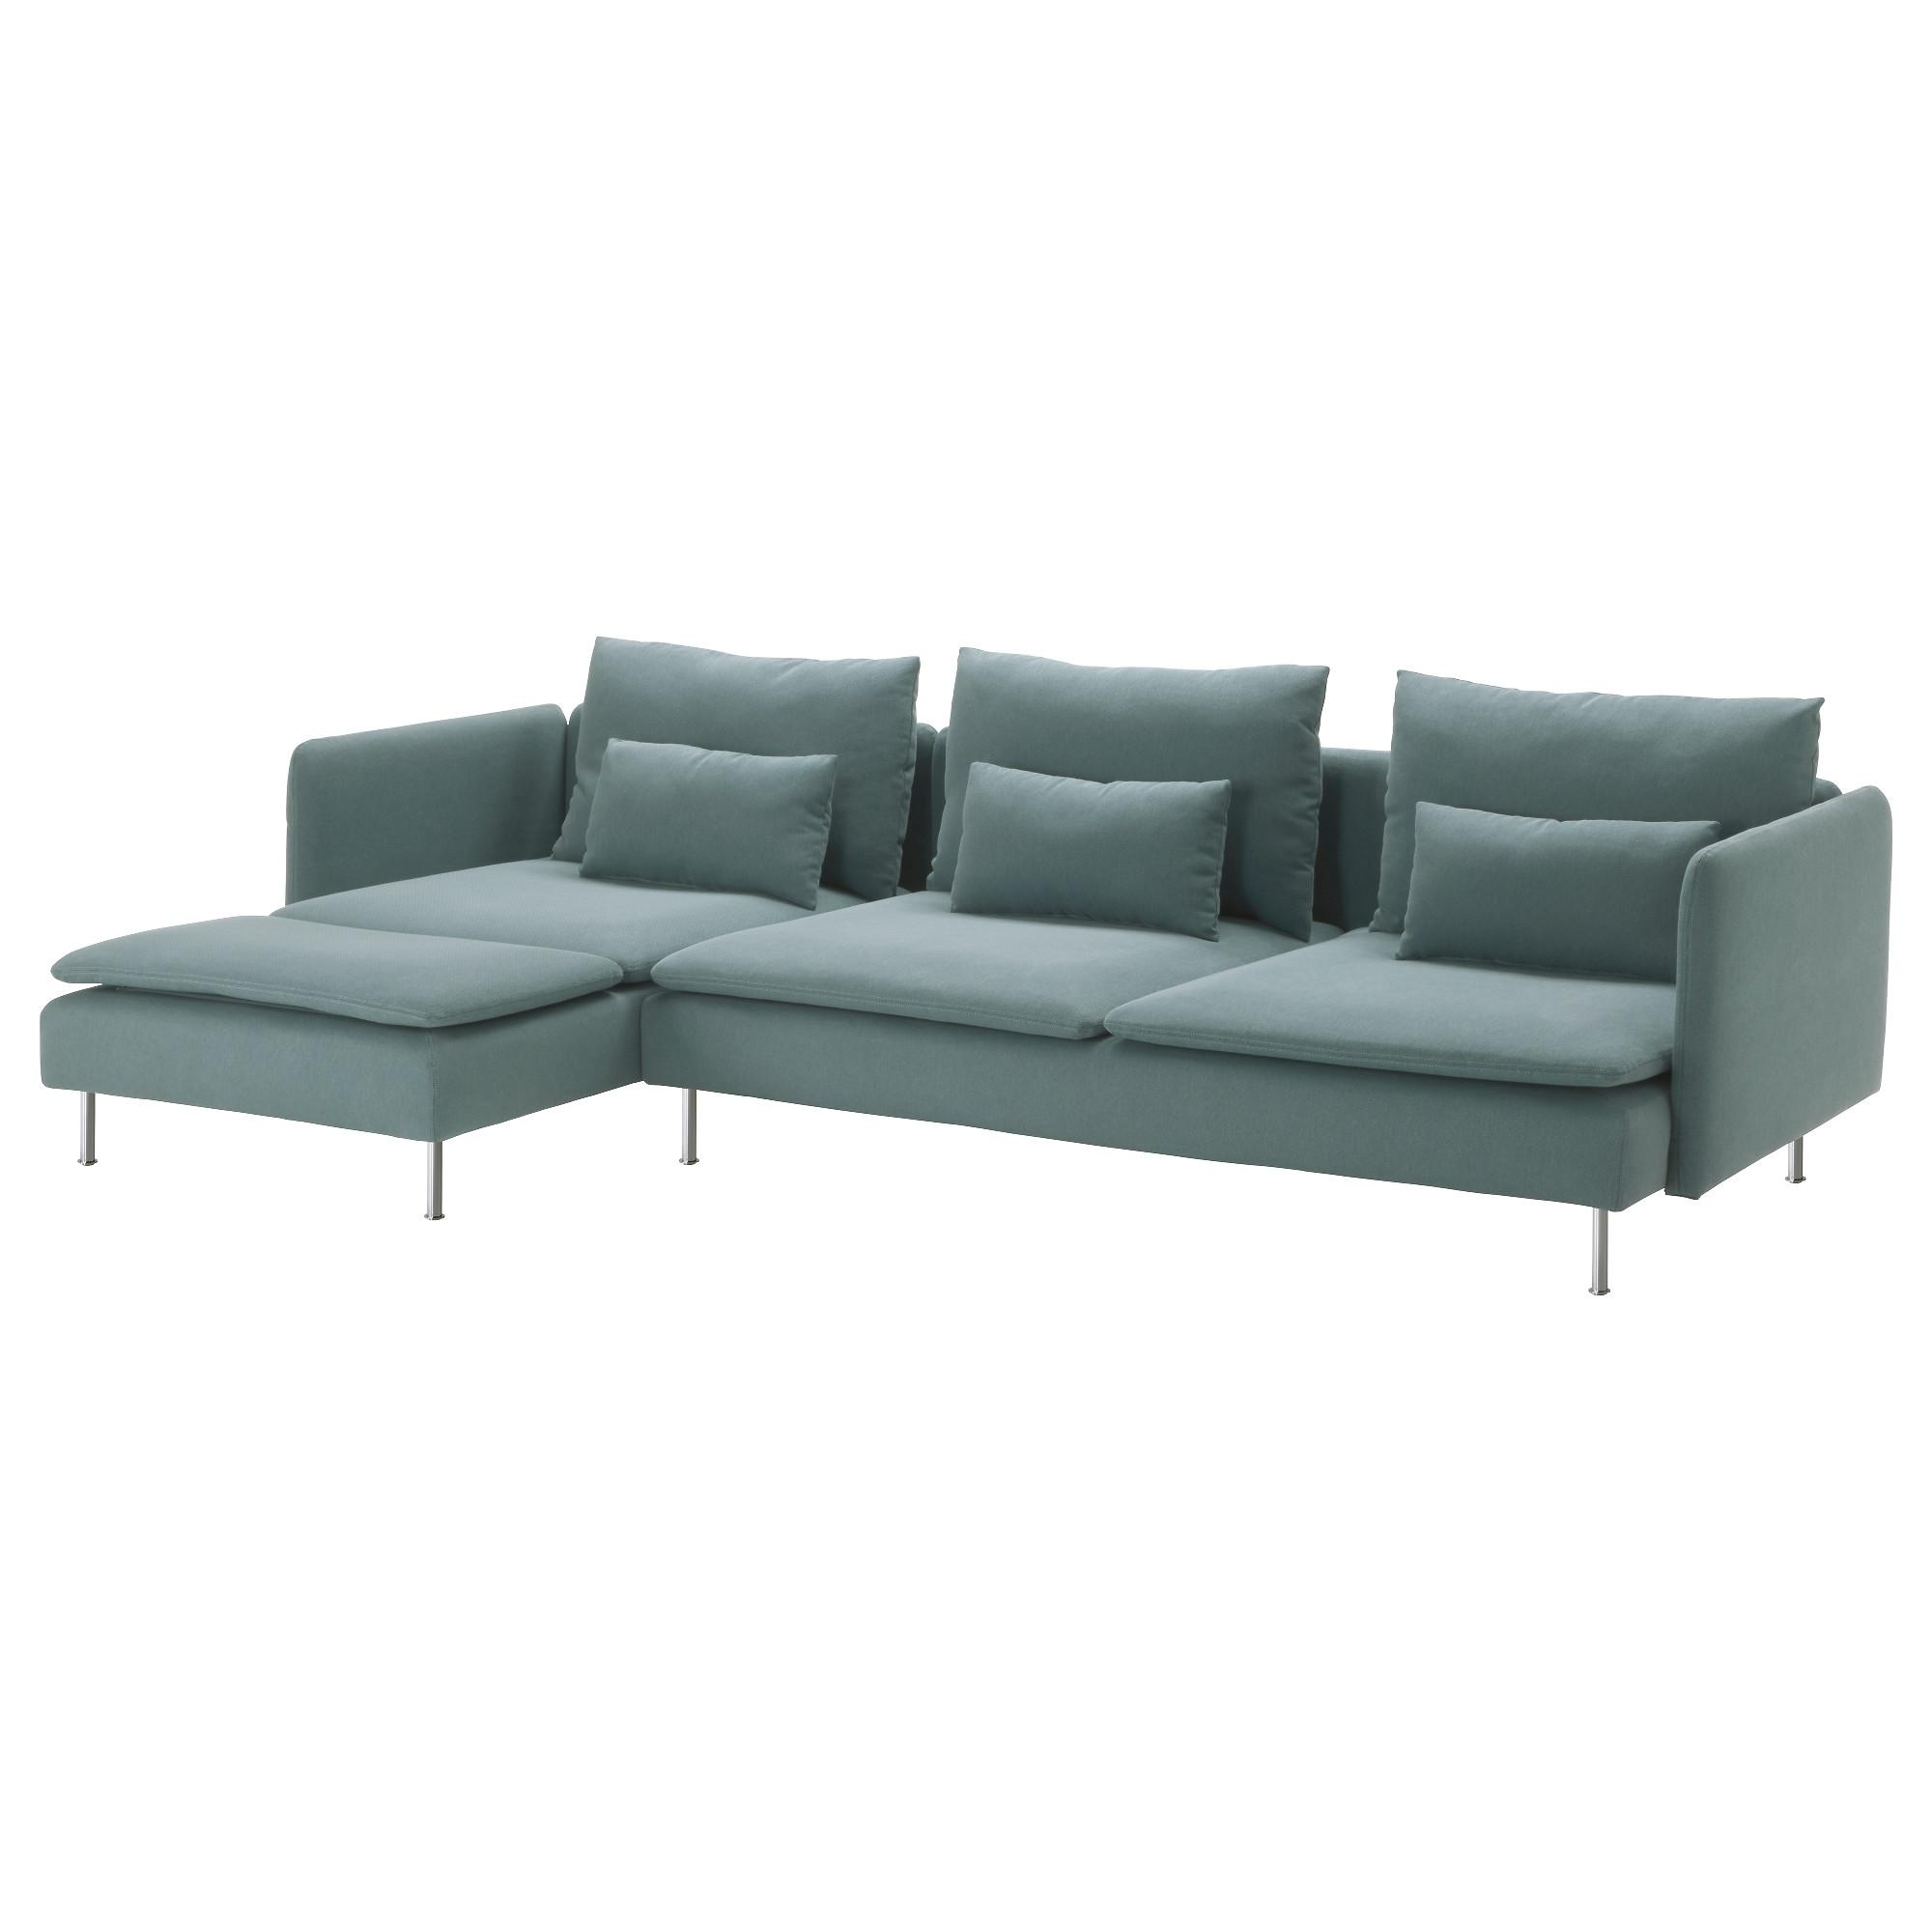 Modular Sofas & Sectionals – Ikea With Regard To Long Chaise Sofa (Image 15 of 20)